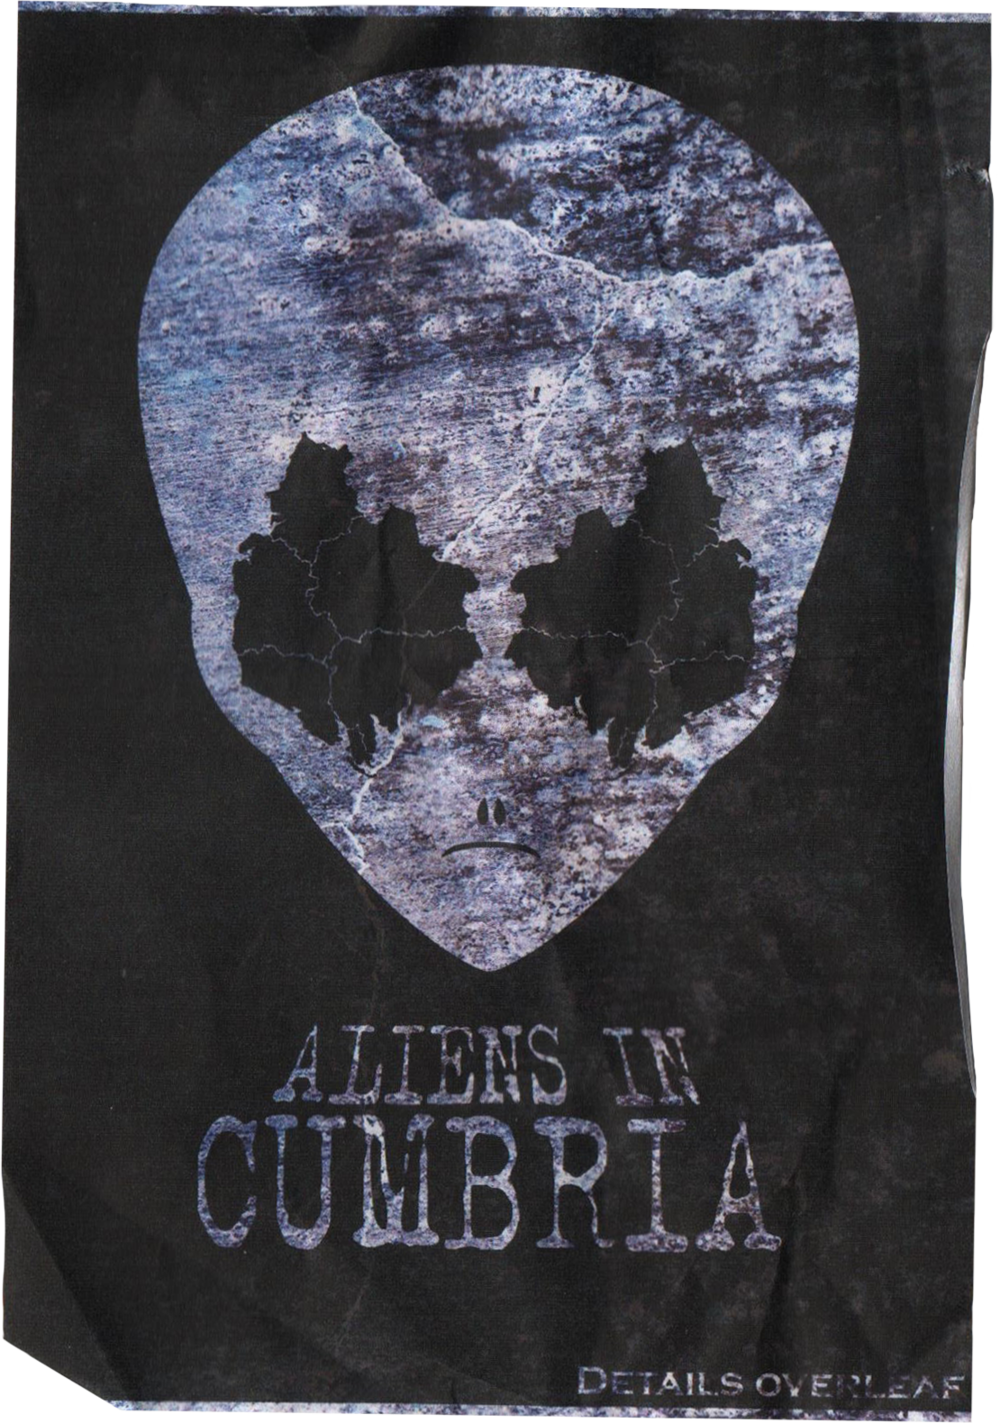 Aliens in cumbria flier.png